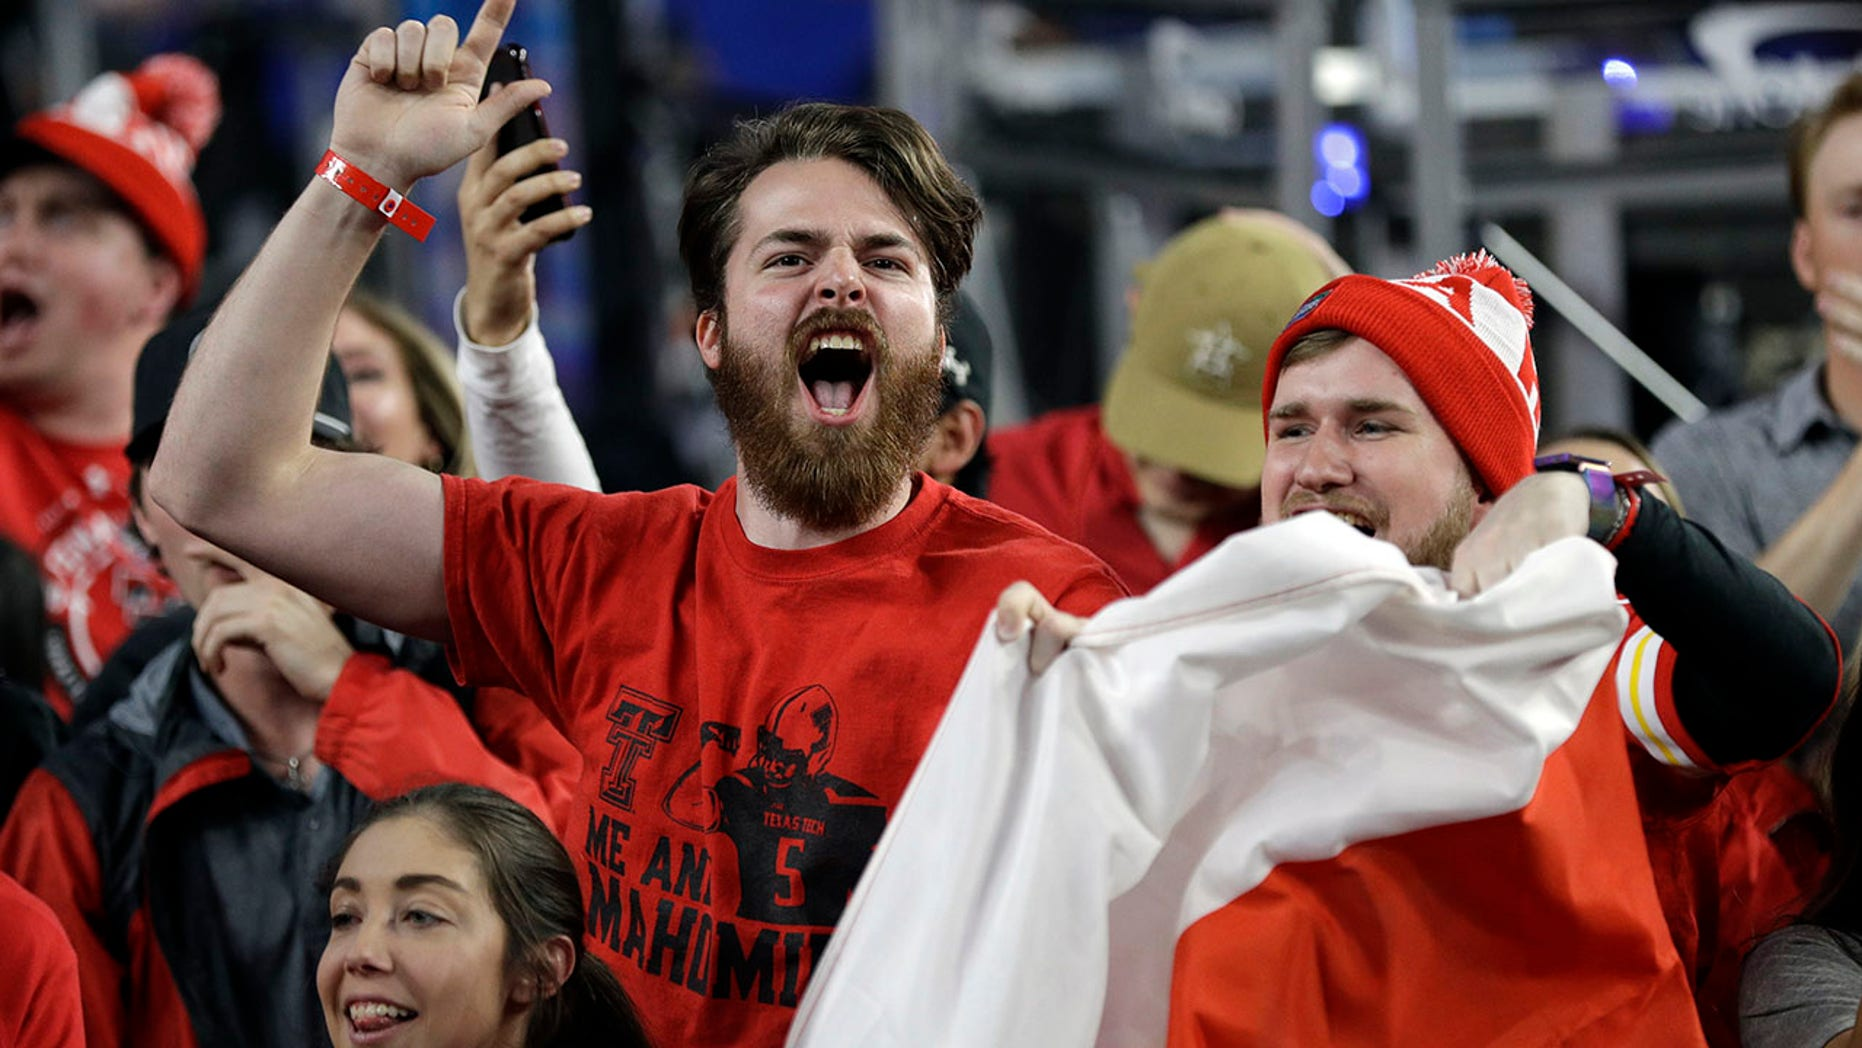 Texas Tech fans cheer before the semifinals of the Final Four NCAA college basketball tournament against Michigan State, Saturday, April 6, 2019, in Minneapolis. (Associated Press)